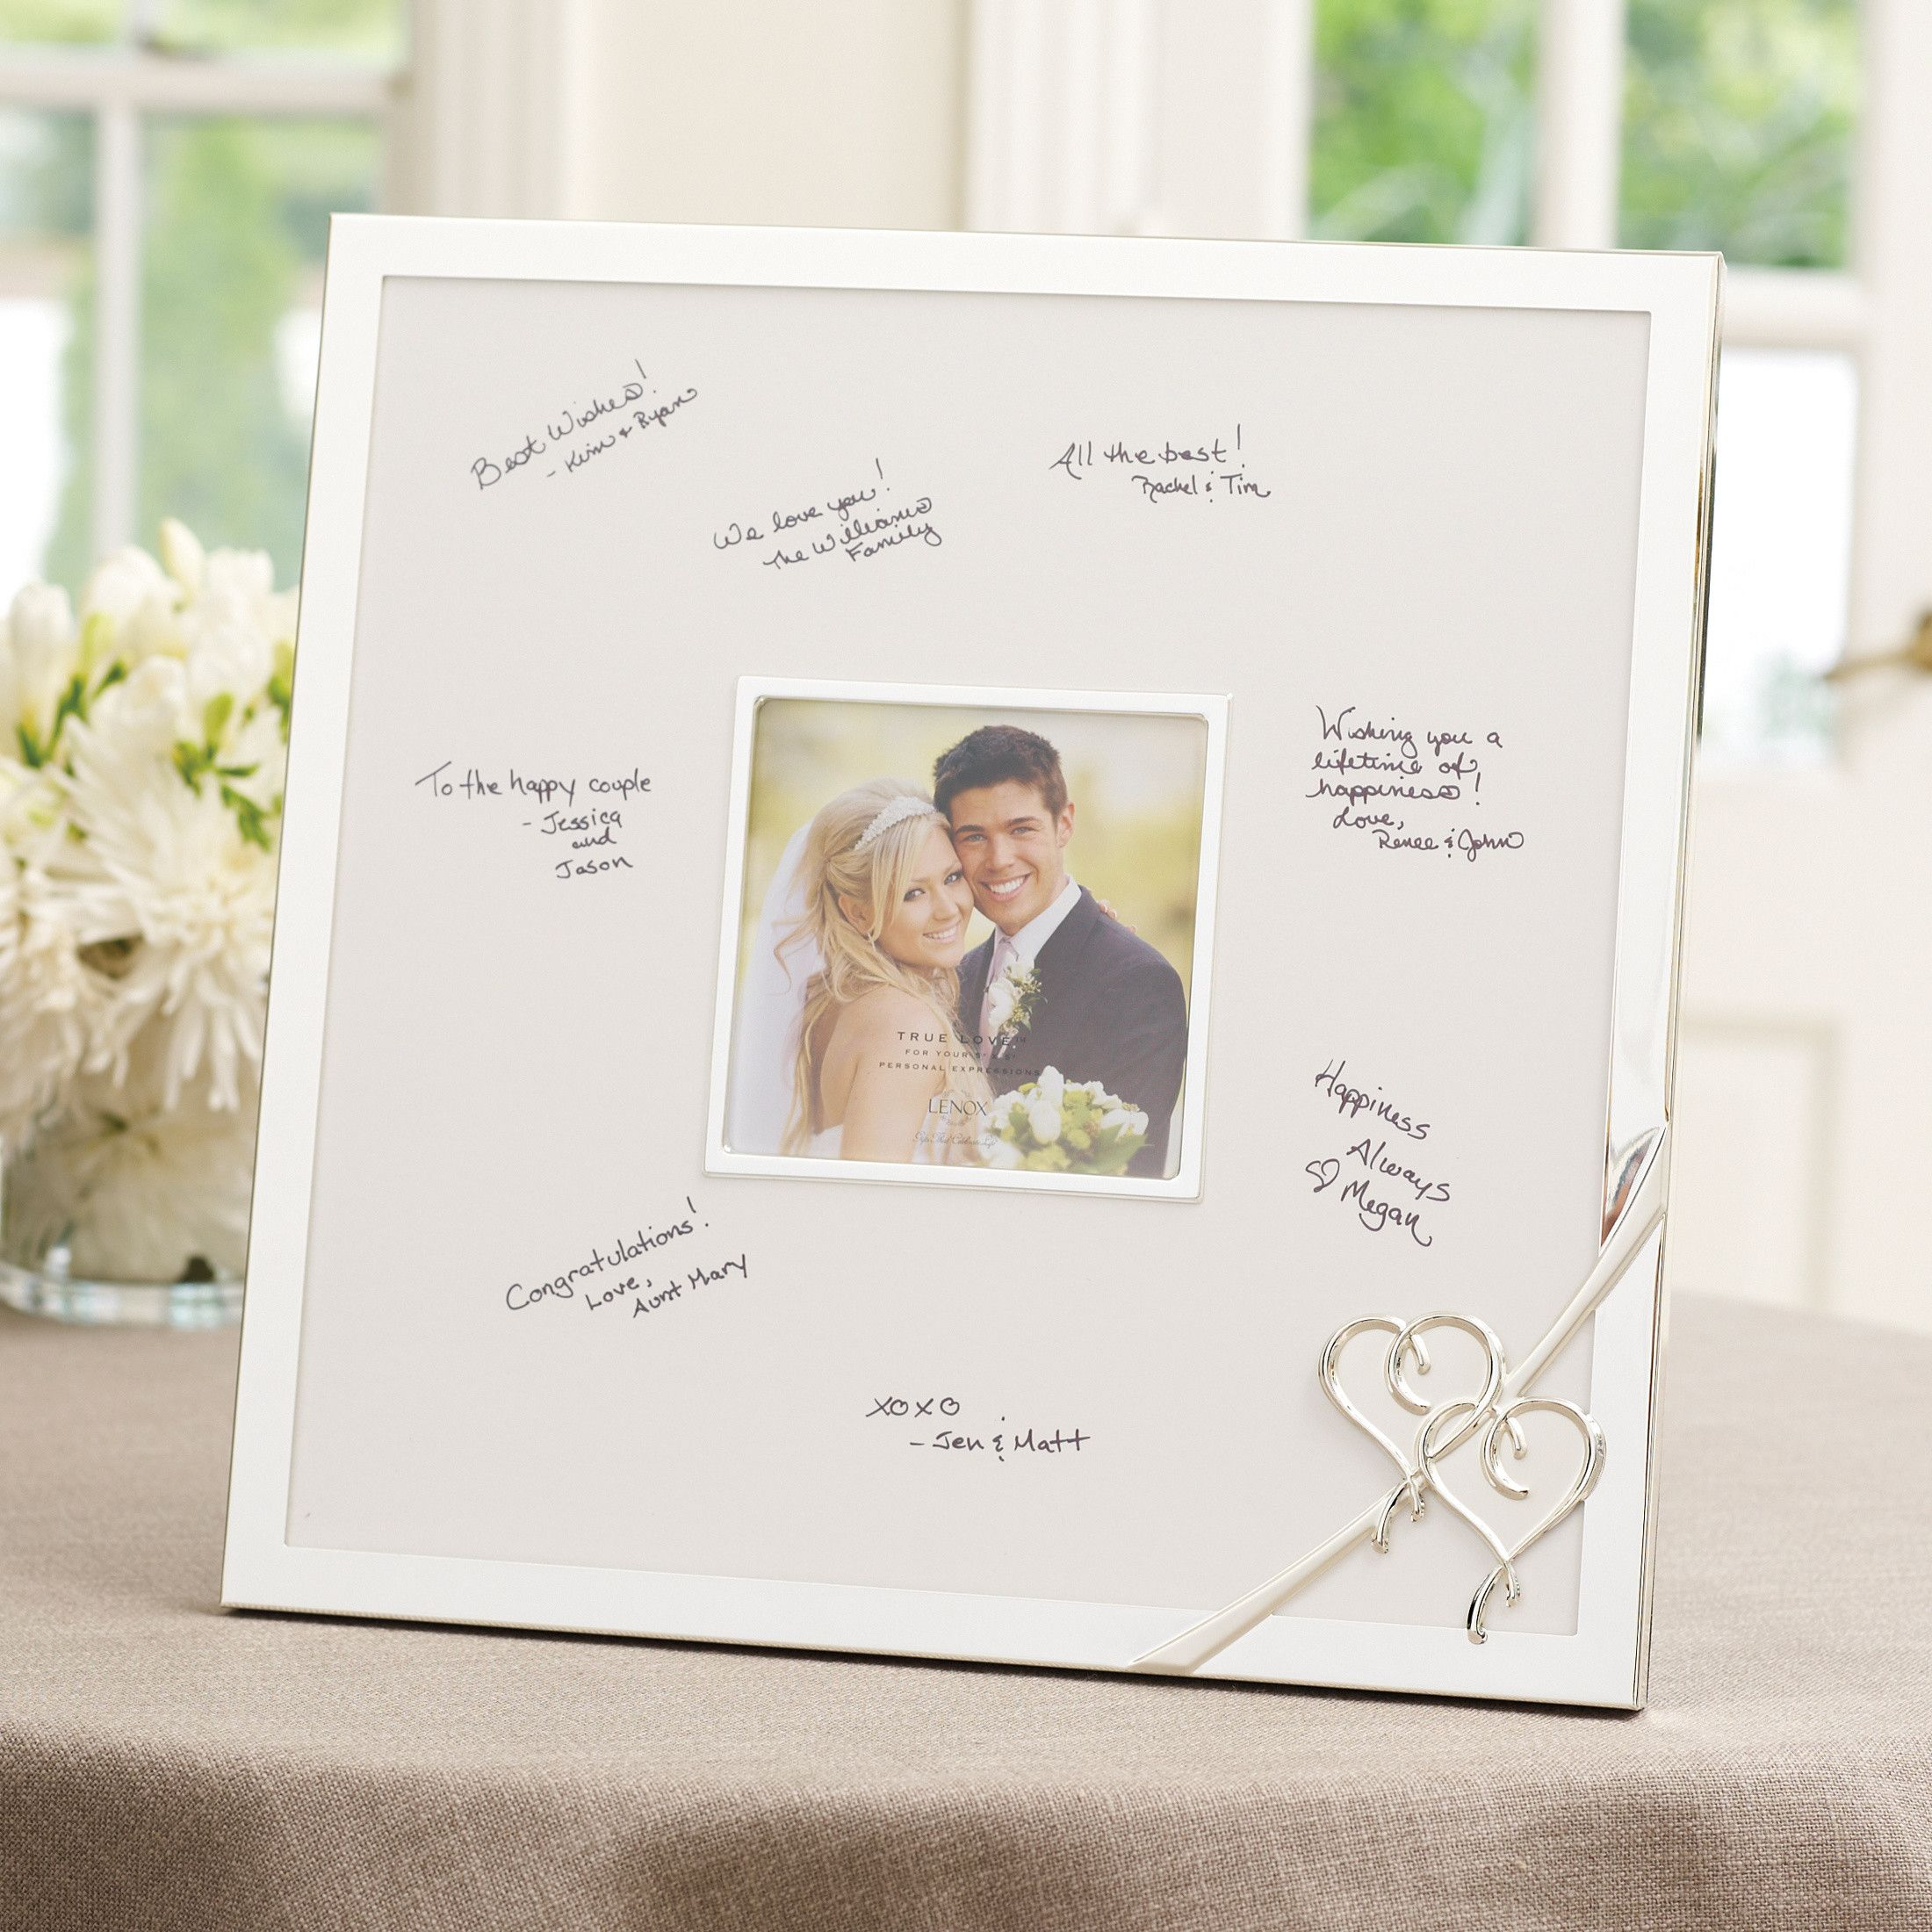 Lenox True Love Wedding Guest Book Frame Wedding Guest Book Frame